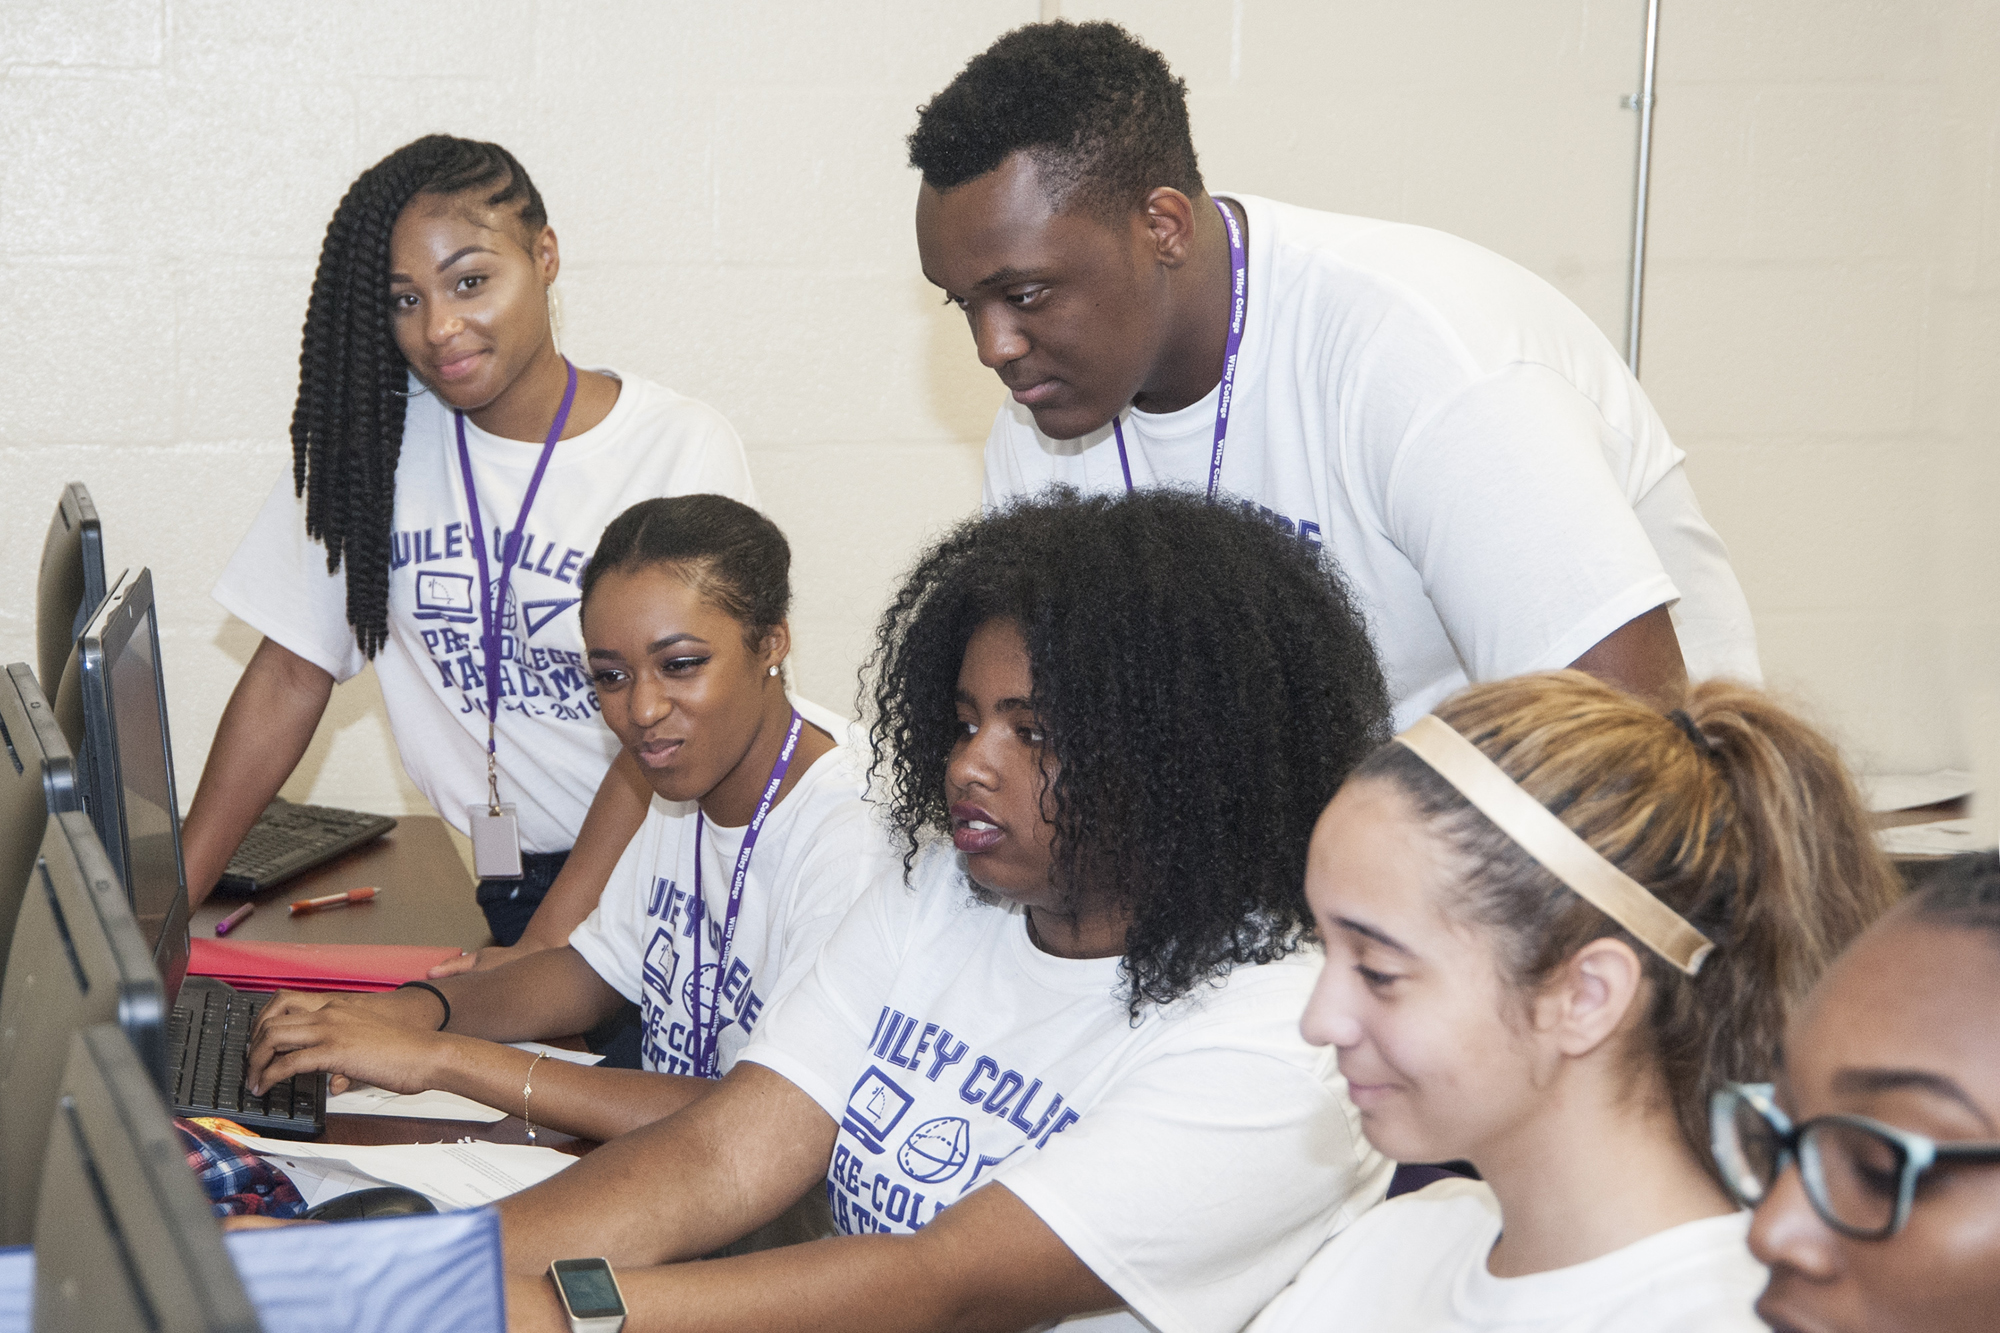 Students working on computers on the campus of Wiley College.